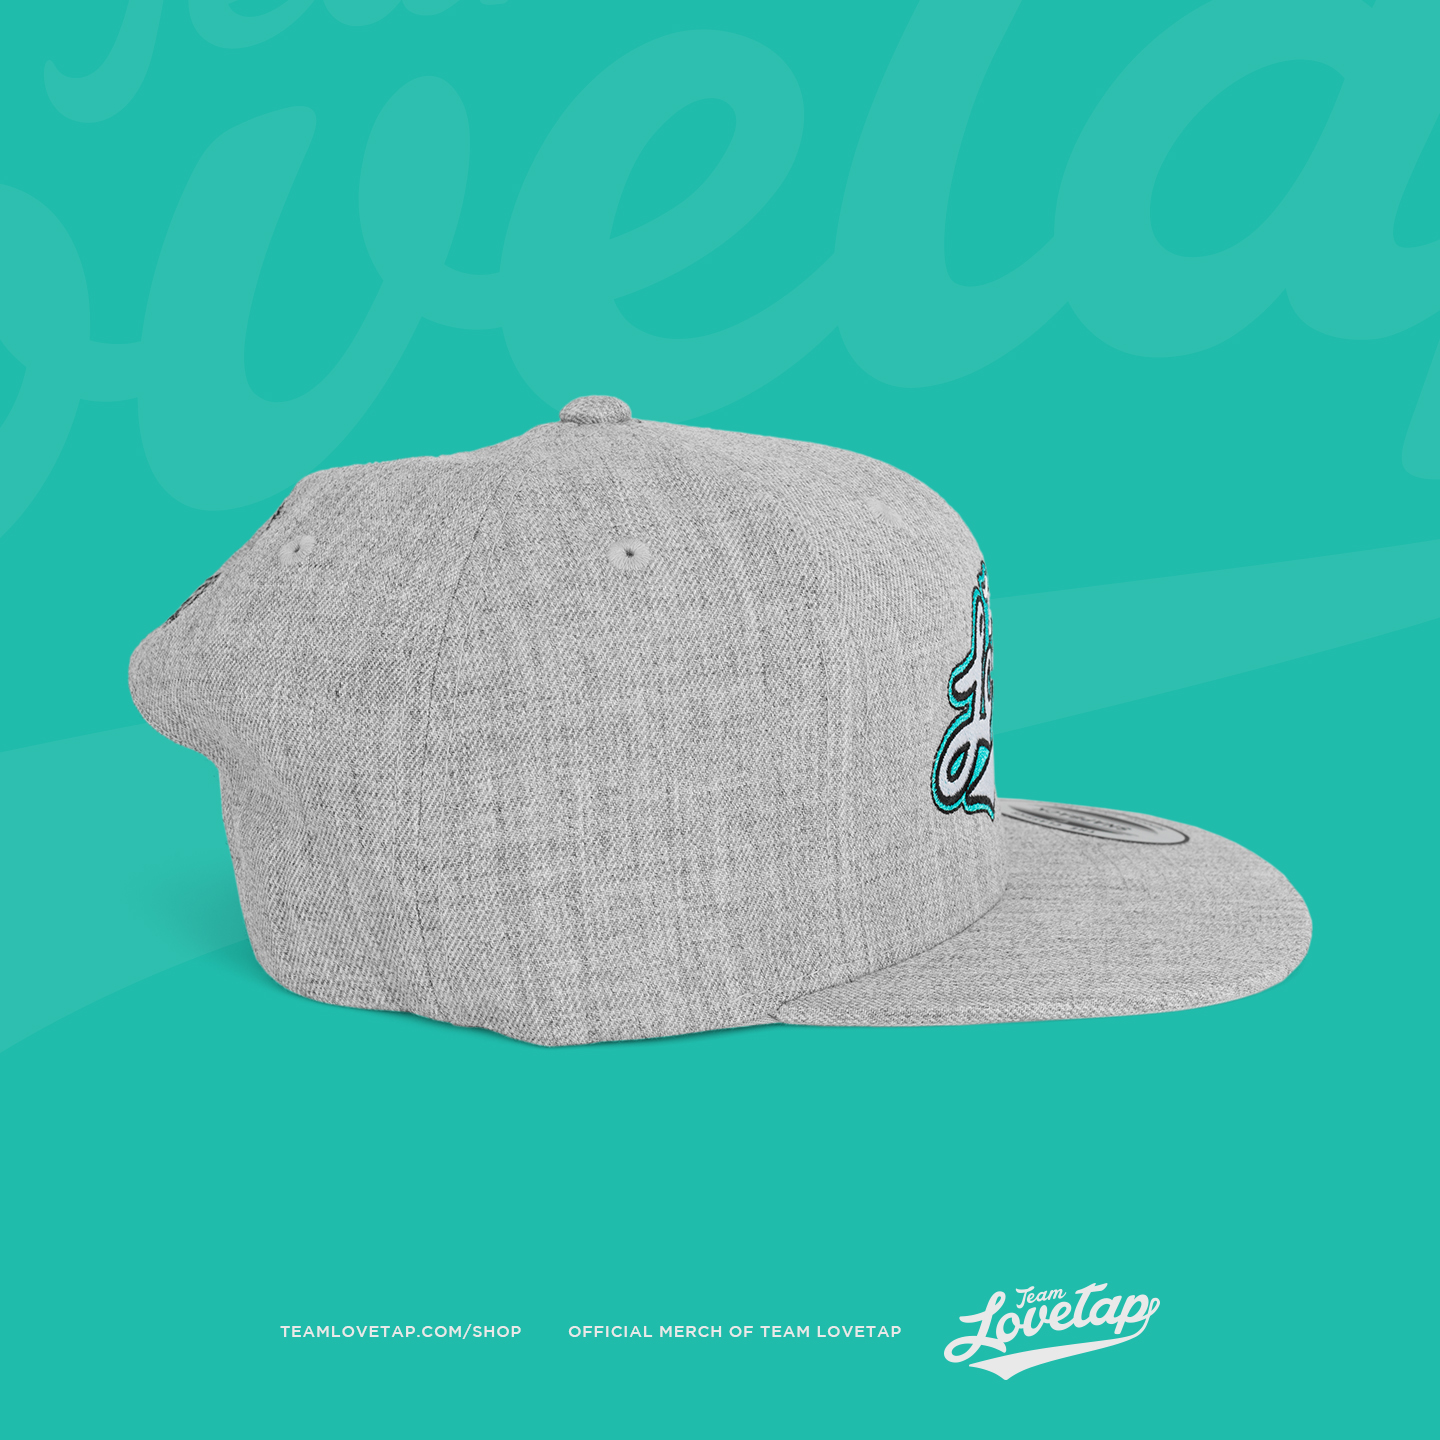 snapback_lightgray_teamlovetap_05.jpg